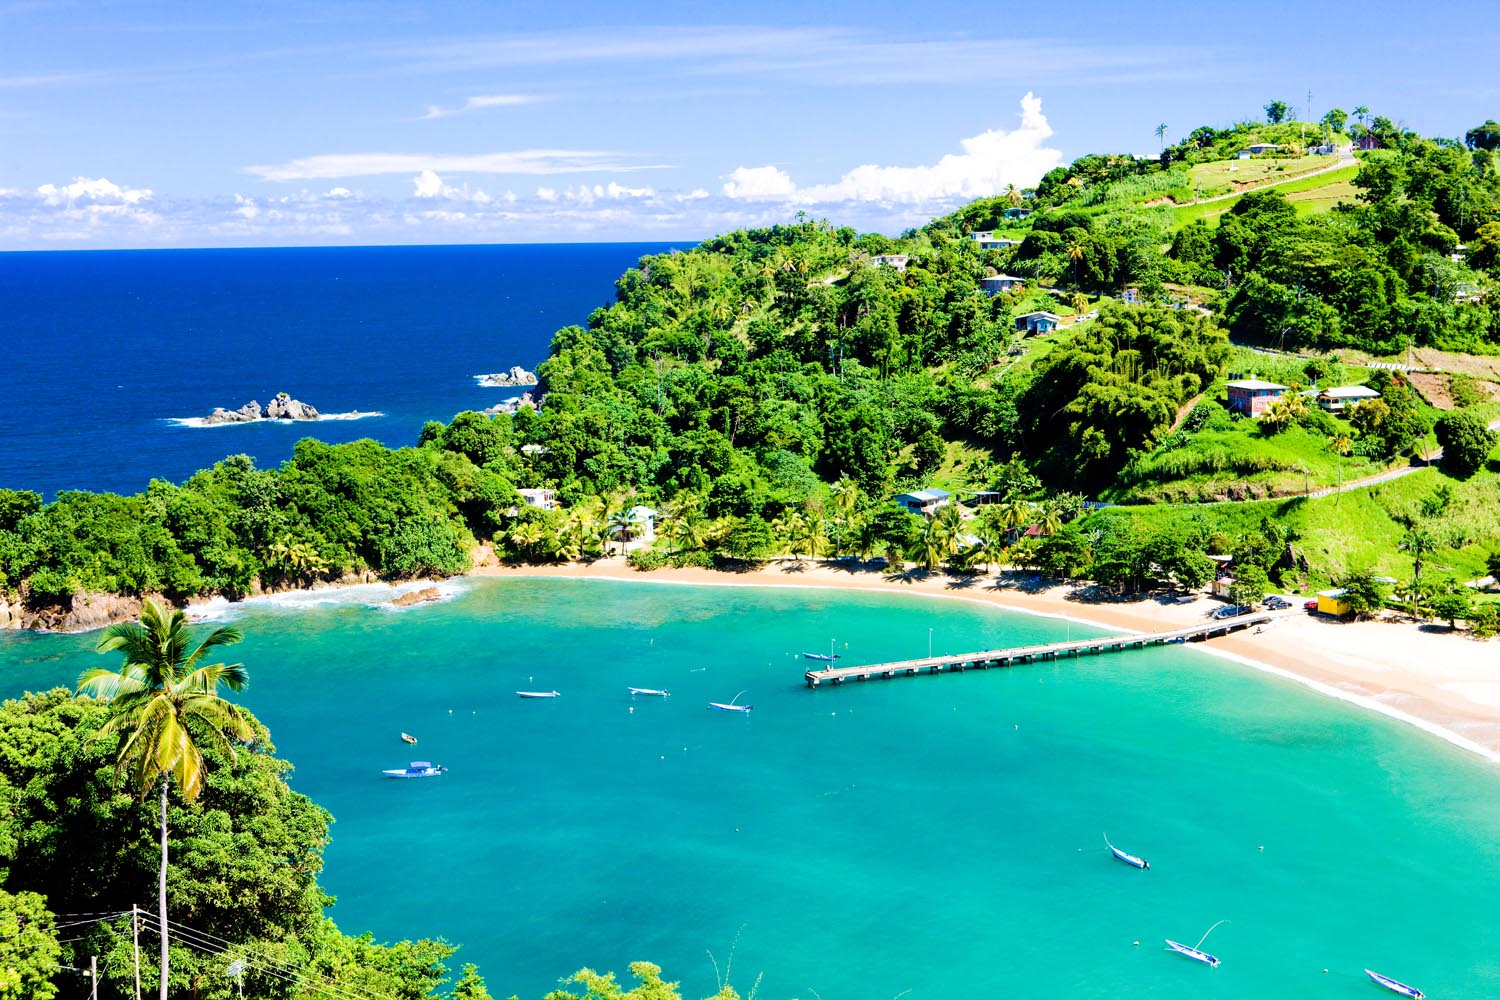 Parlatuvier Bay, one of the gems of Tobago. Photo by Richard Semik/Shutterstock.com